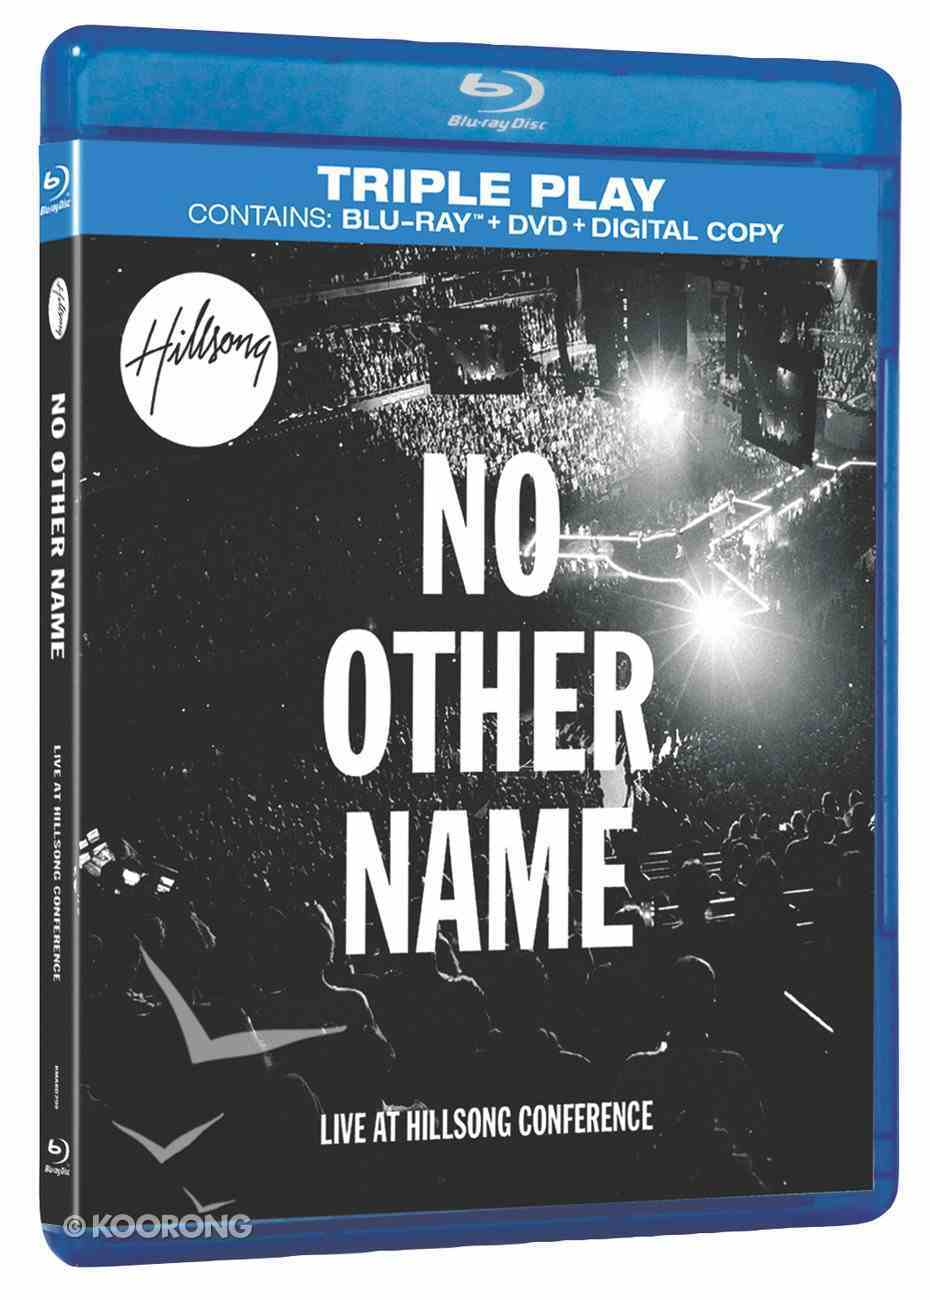 2014 No Other Name (Blu-ray) Blu-ray Disc